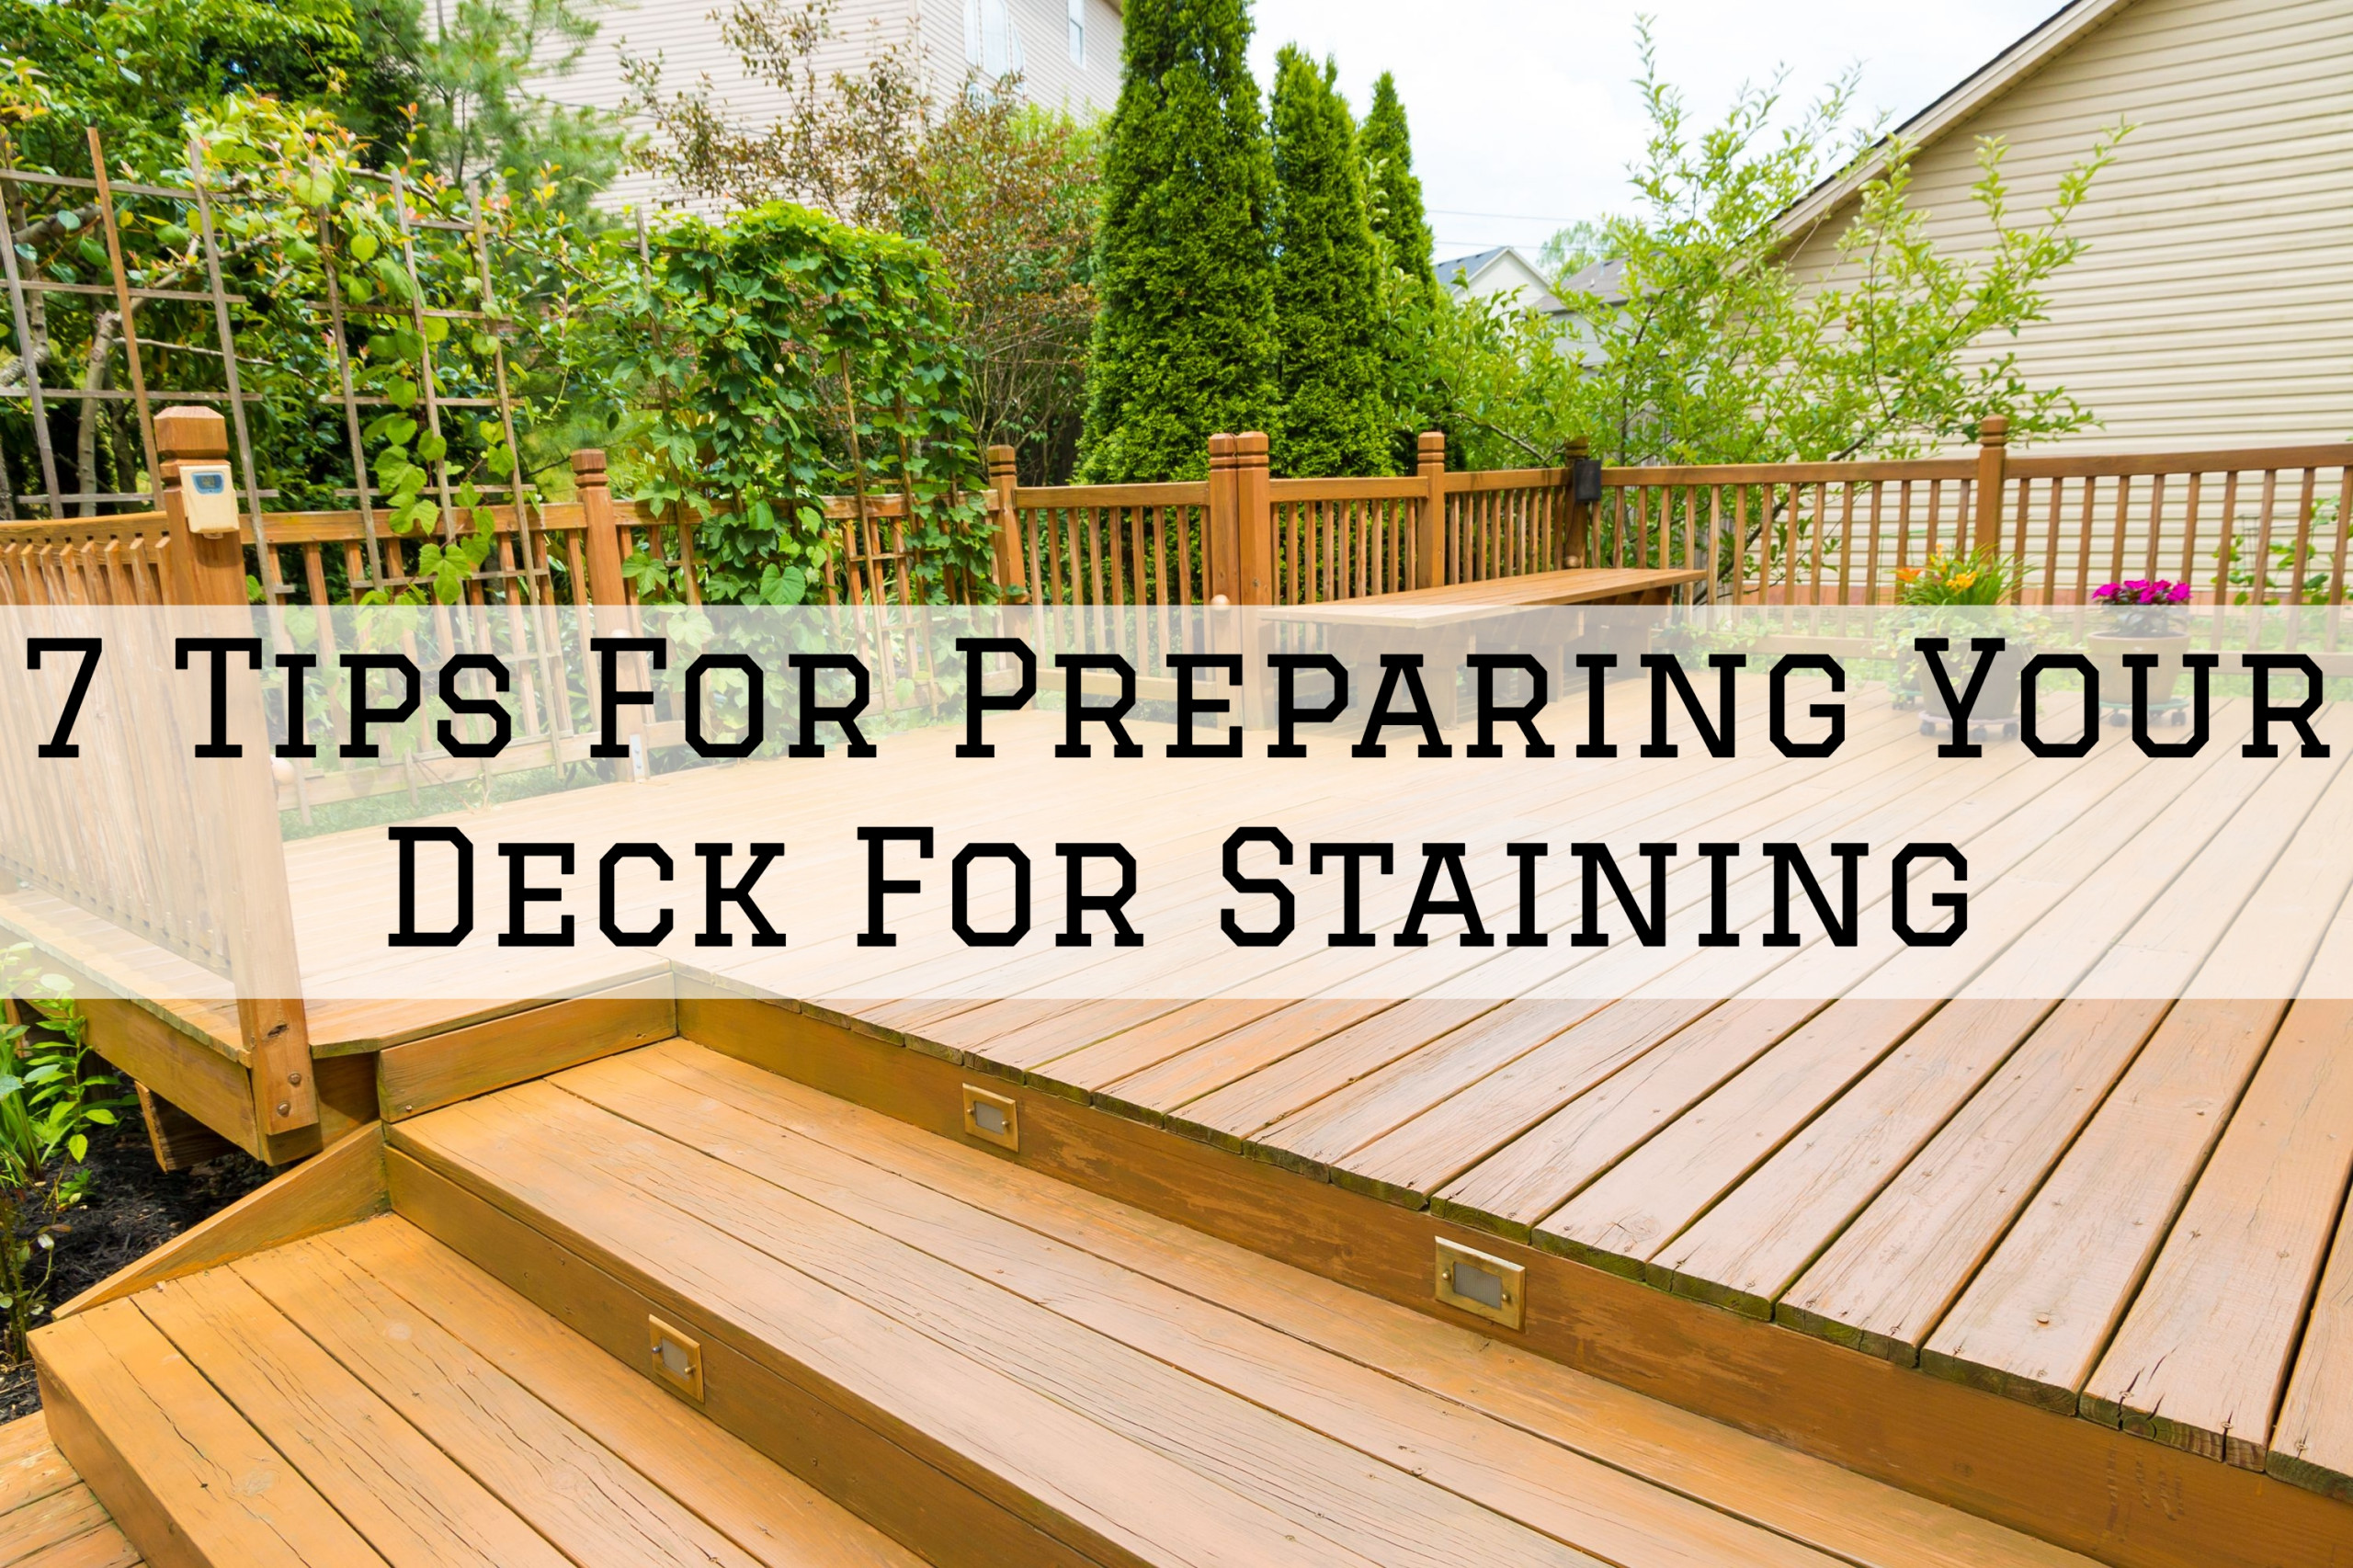 07-09-2021 Steves Quality Painting And Washing Green Lake WI tips for preparing your deck